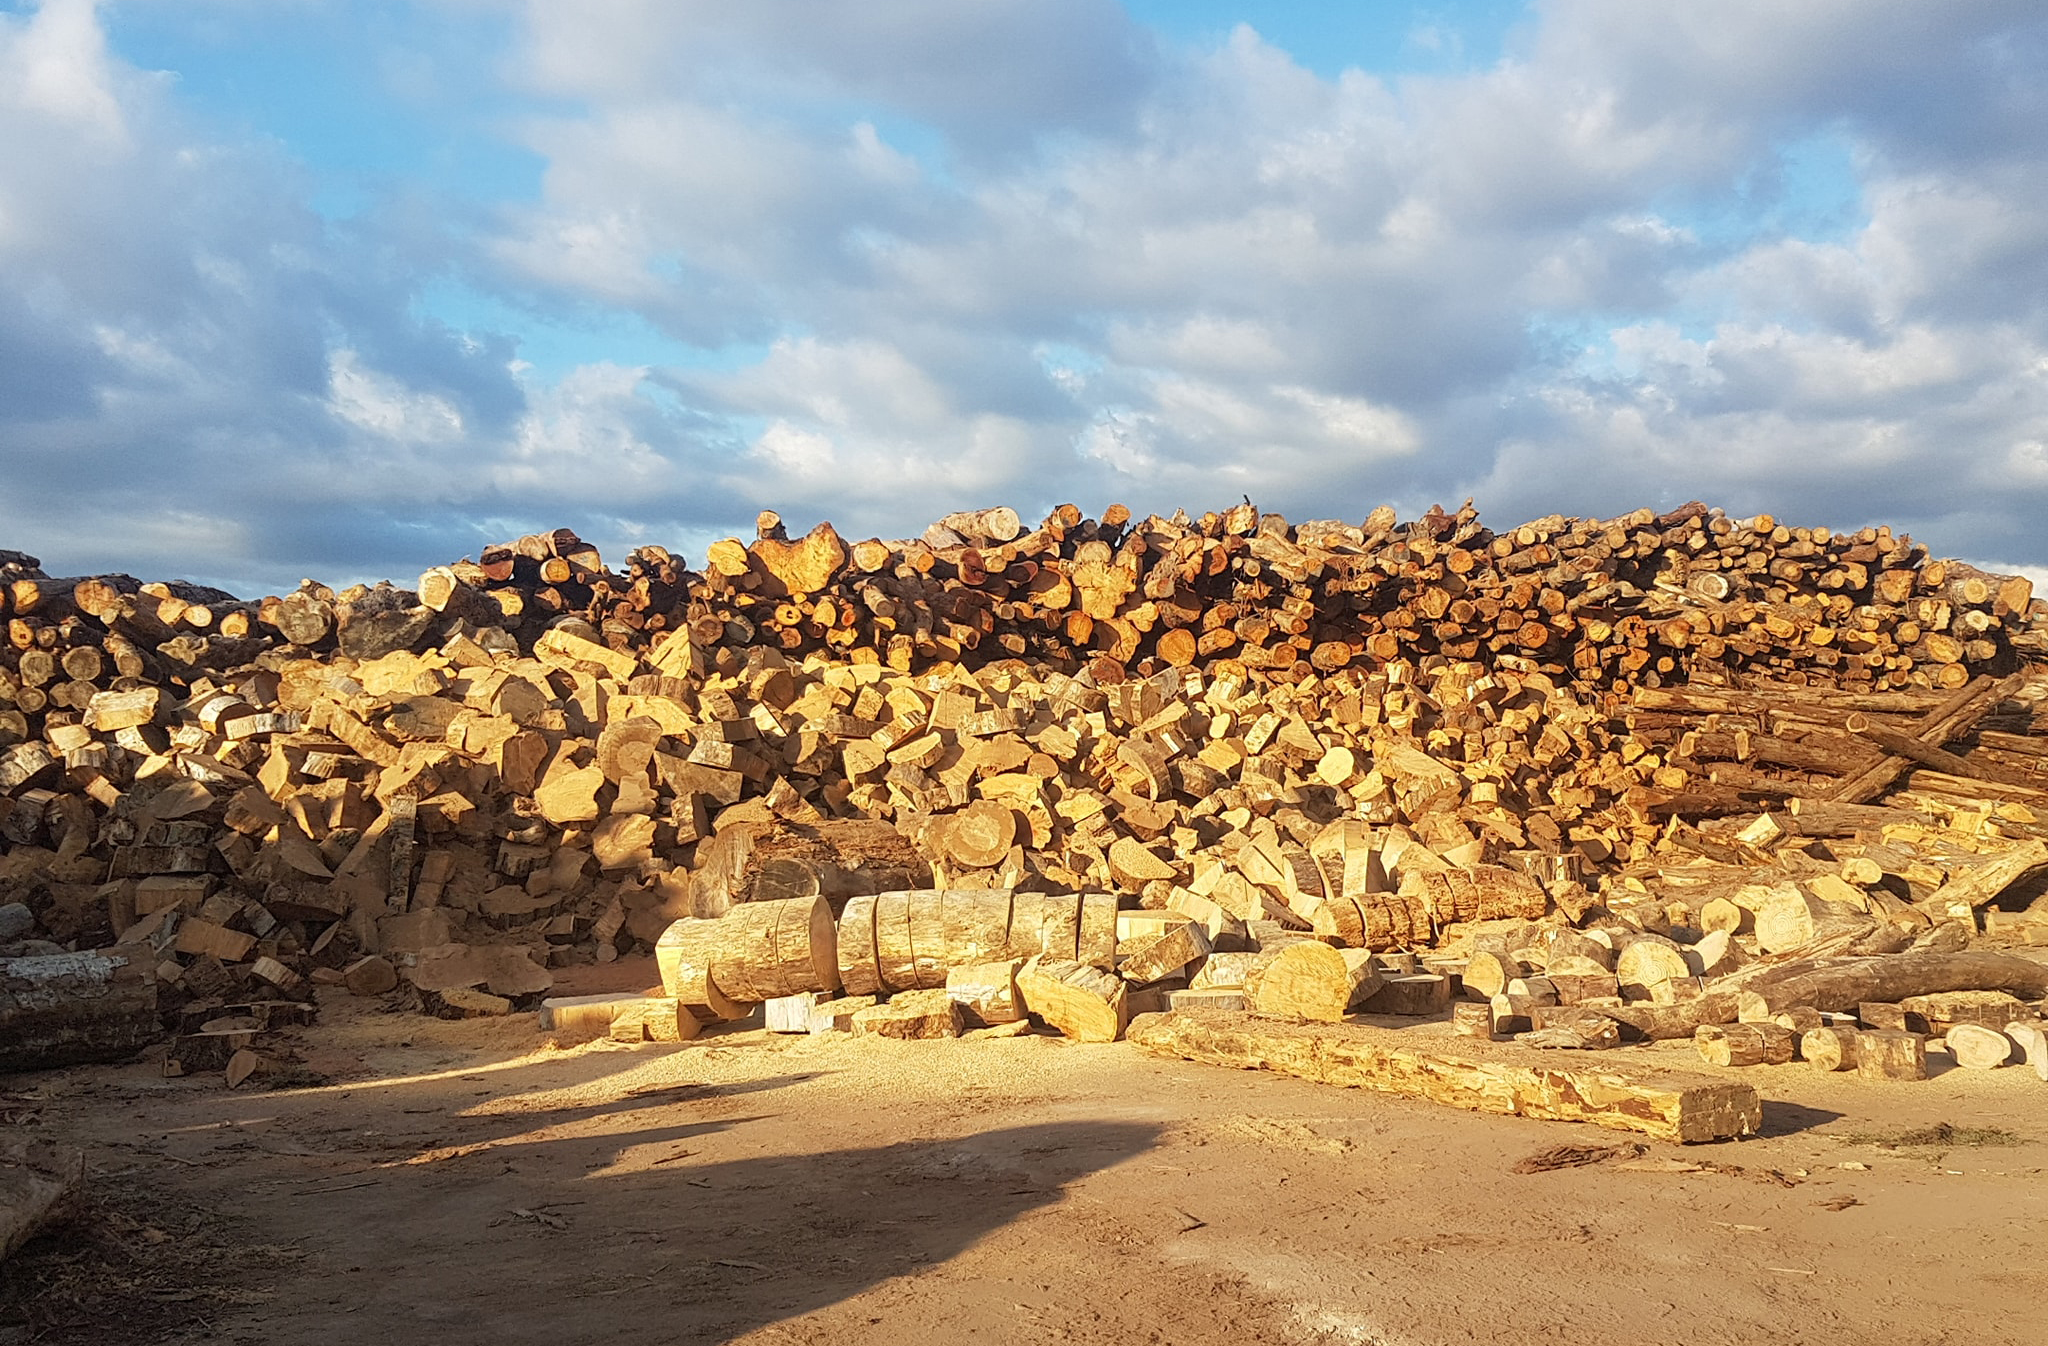 ignition firewood